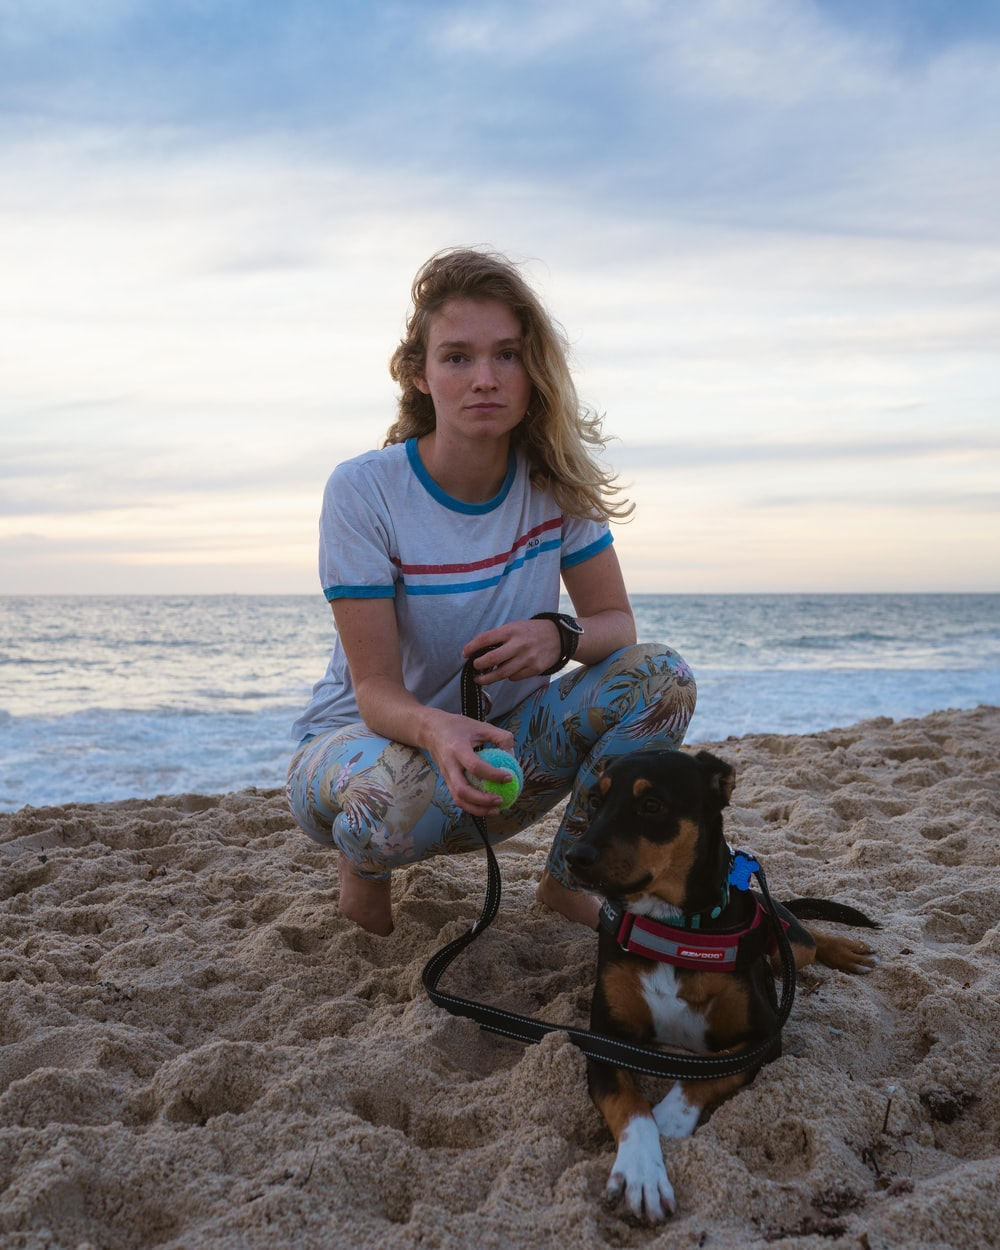 woman in blue crew neck t-shirt holding black and brown short coated dog on beach